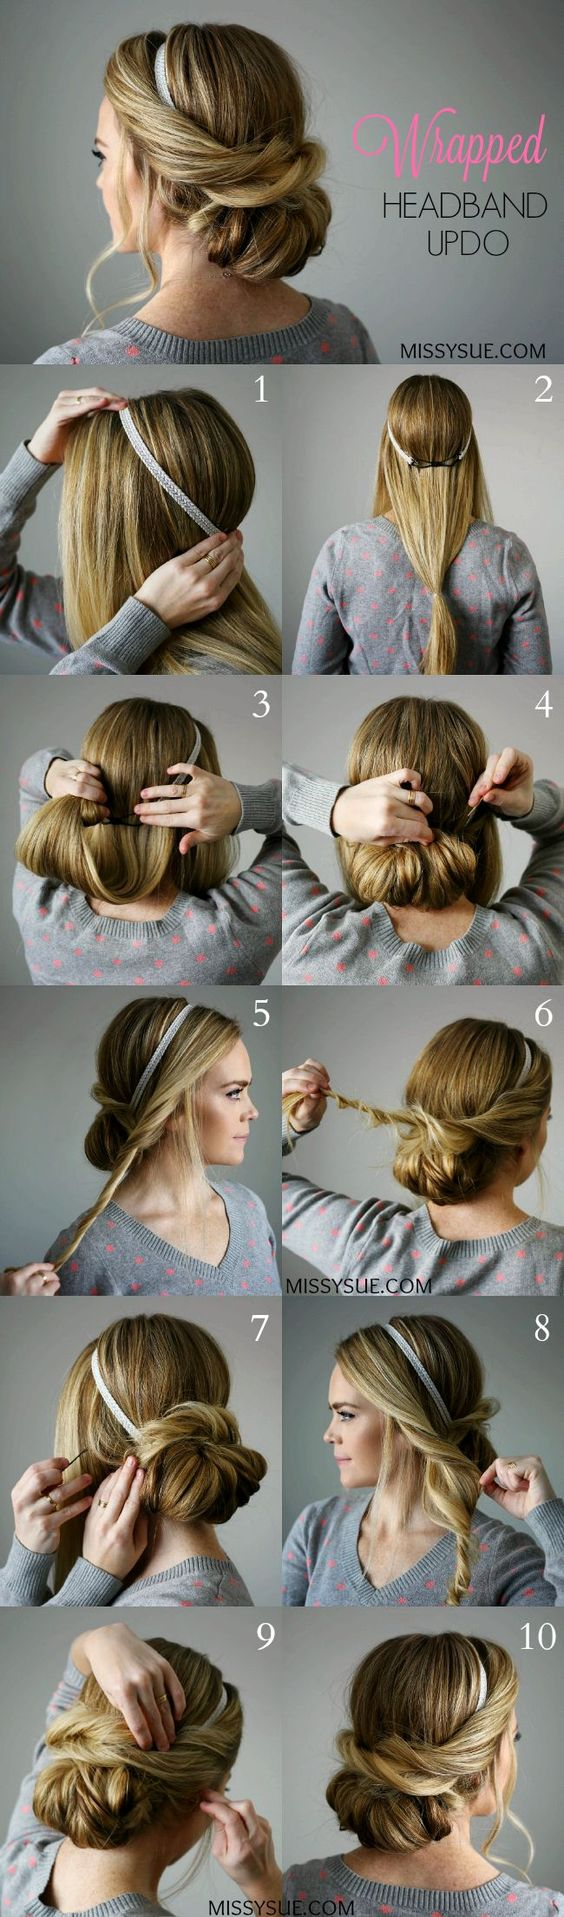 25 Step By Step Tutorial For Beautiful Hair Updos ❤ - Page 2 of 5 - Trend To Wear: